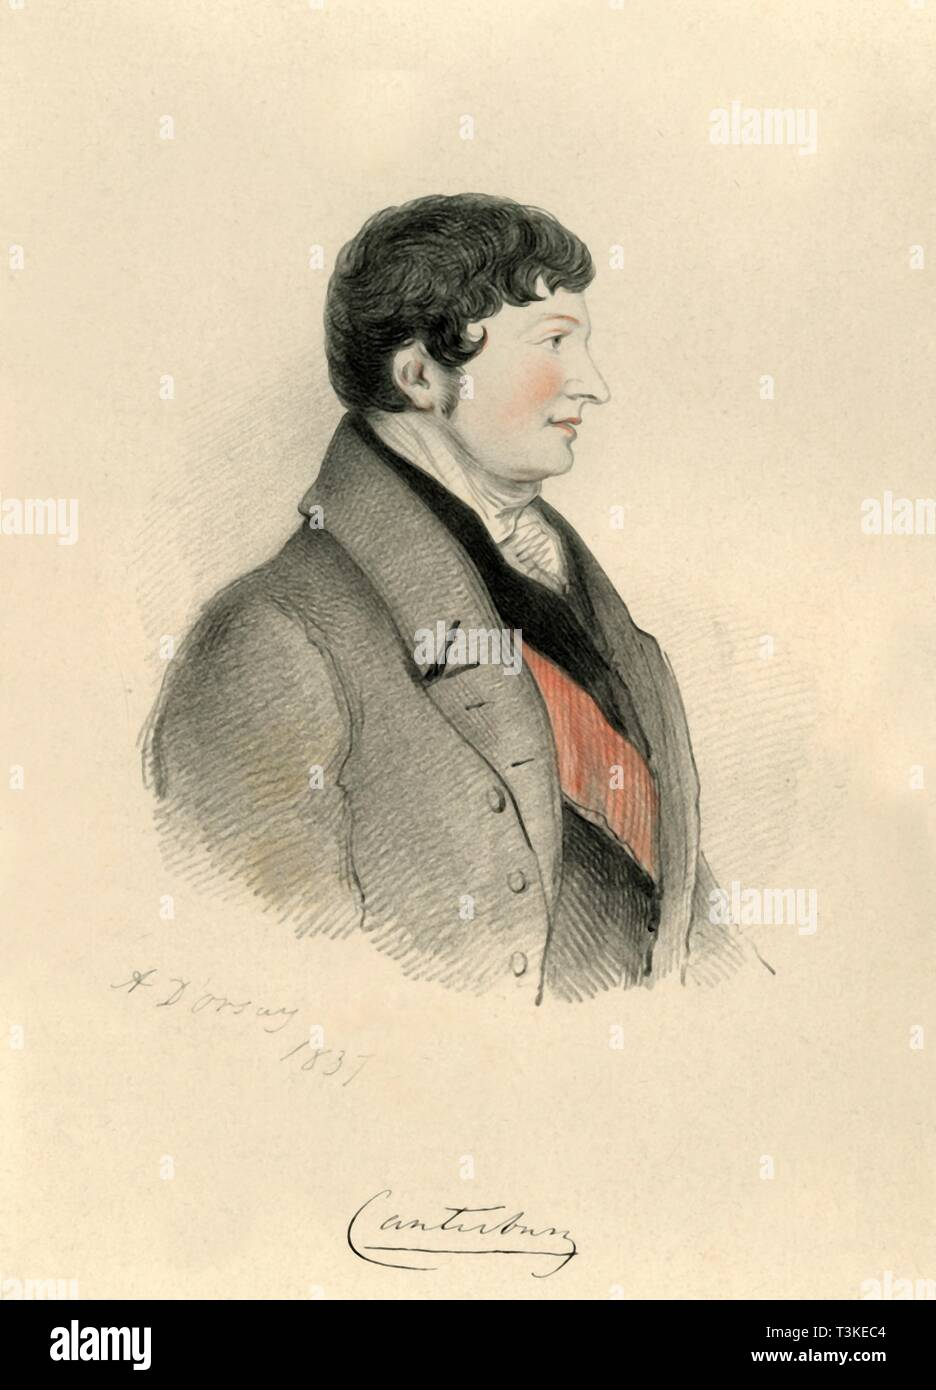 Charles Manners Sutton, 1st Viscount Canterbury, 1837. Creator: Alfred d'Orsay. Stock Photo